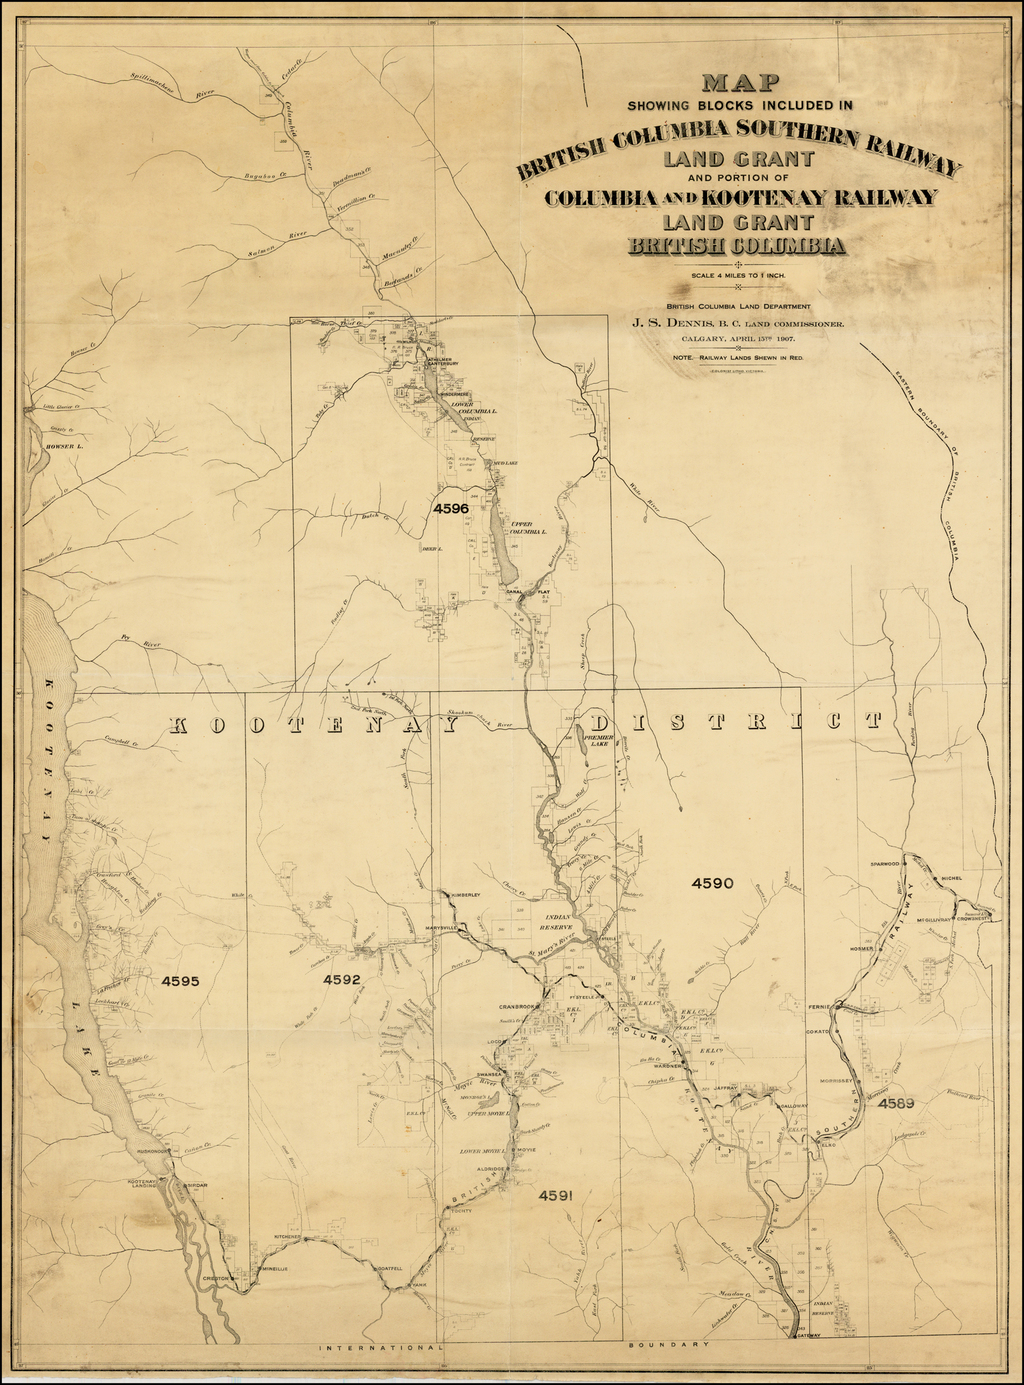 Map Showing Blocks Included in British Columbia Southern Railway Land Grant and portion of Columbia and Kootenay Railway Land Grant British Columbia . . . 1907 By British Columbia Land Department